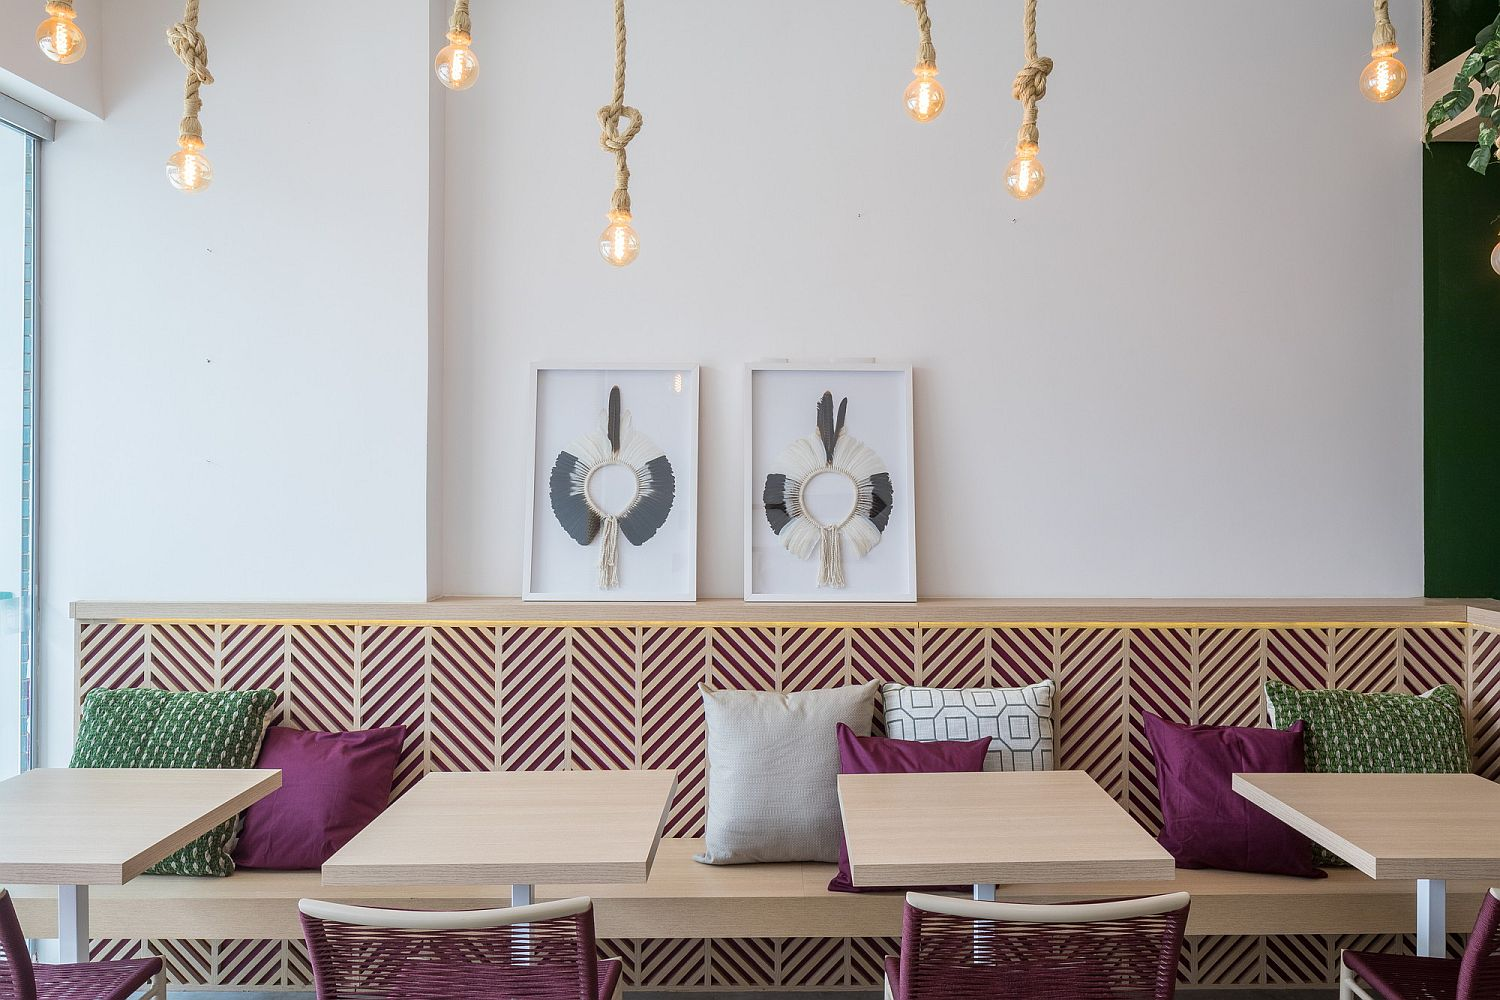 Edison bulbs hung beautifully give the interior a smart, casual vibe